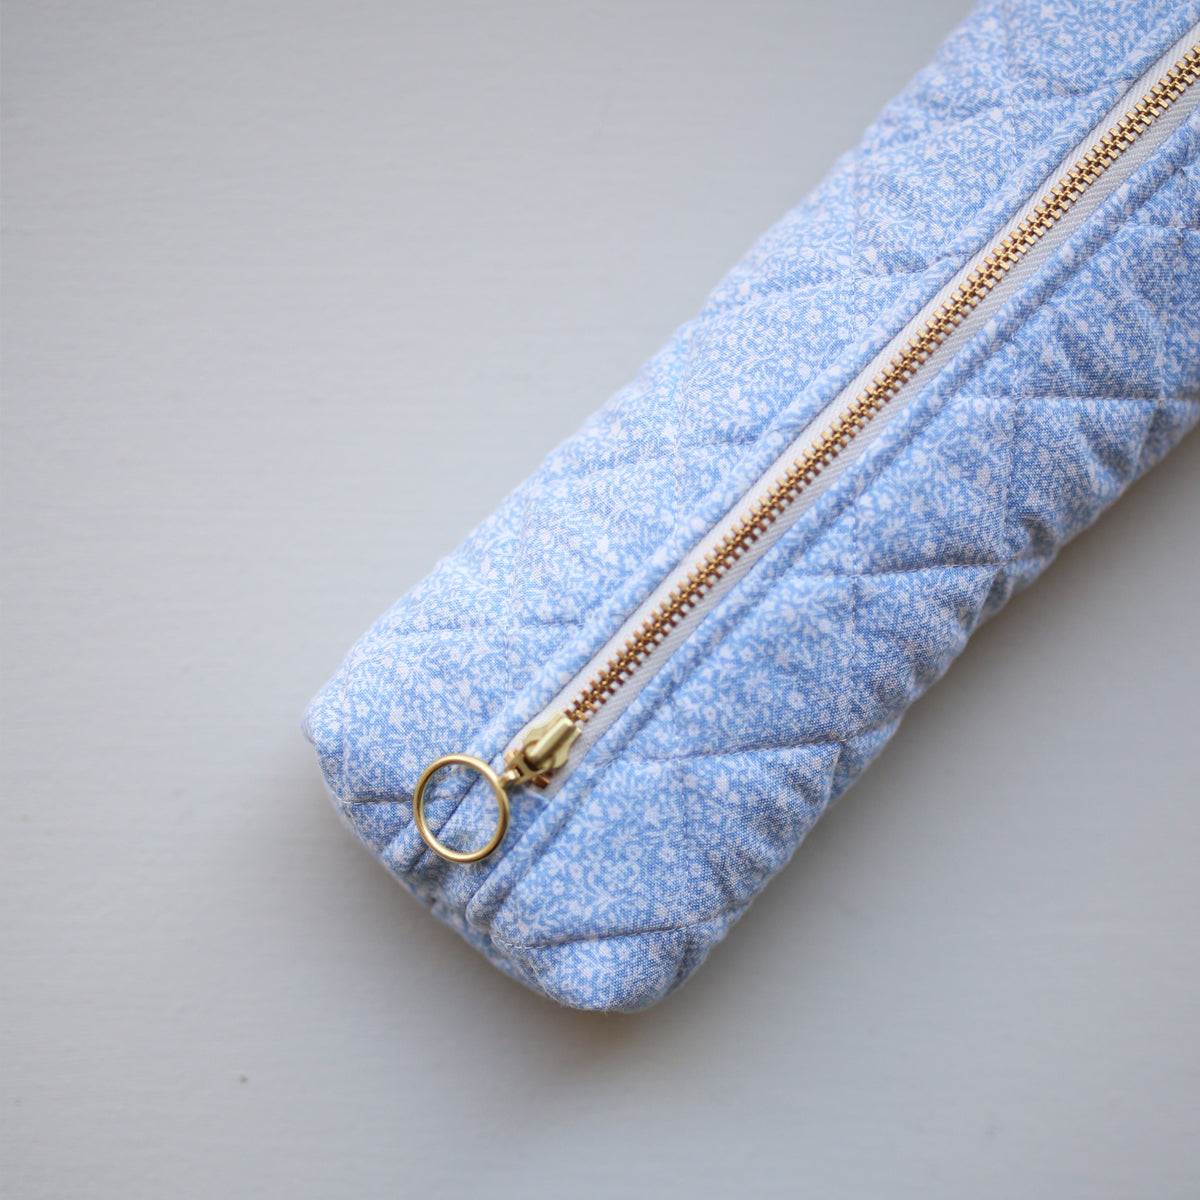 PEN CASE // BLUE FLOWERS